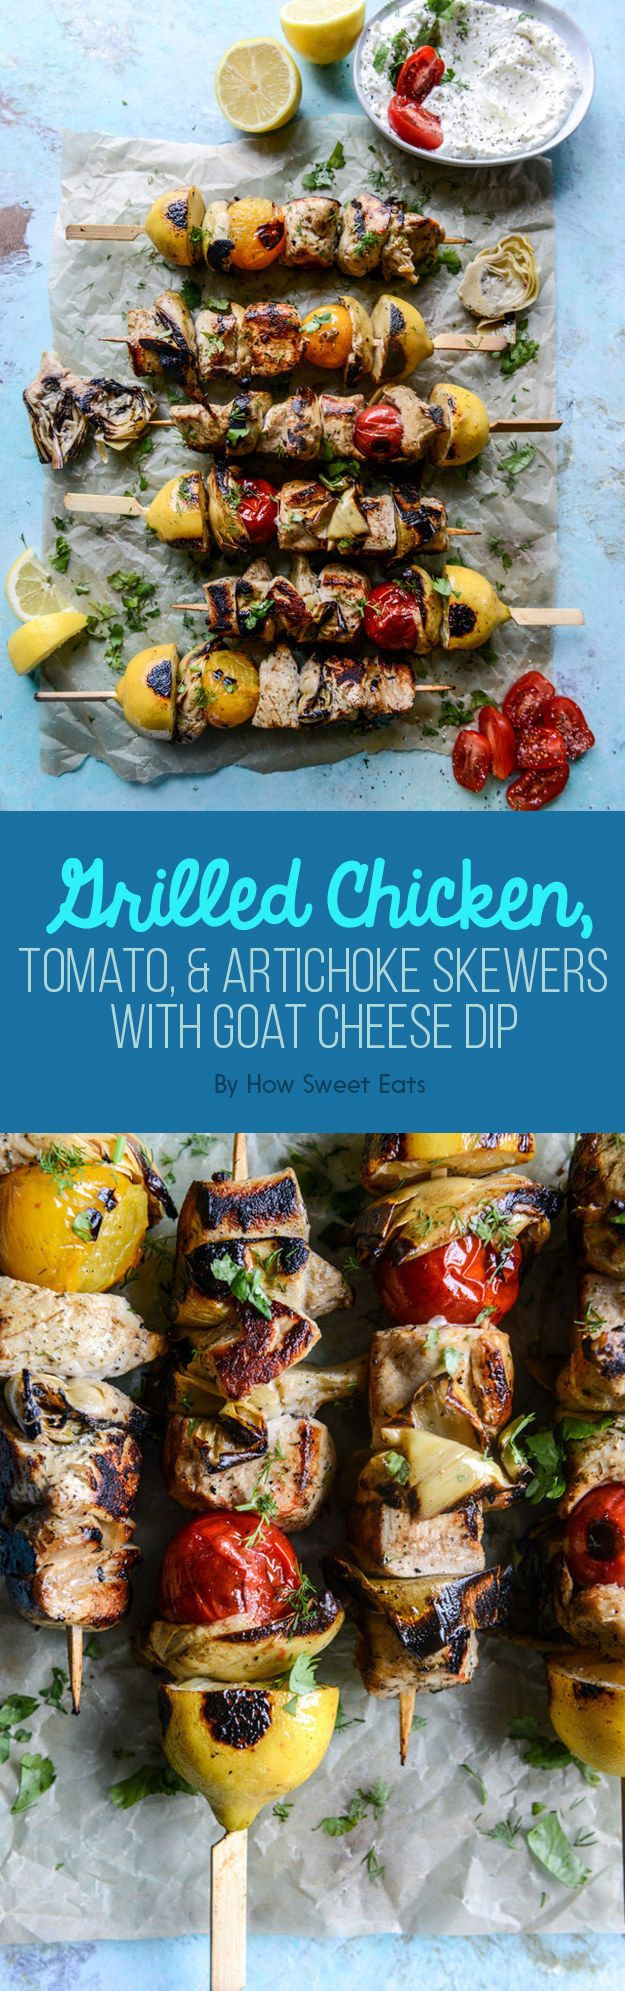 Grilled Chicken, Tomato, and Artichoke Skewers with Goat Cheese Dip